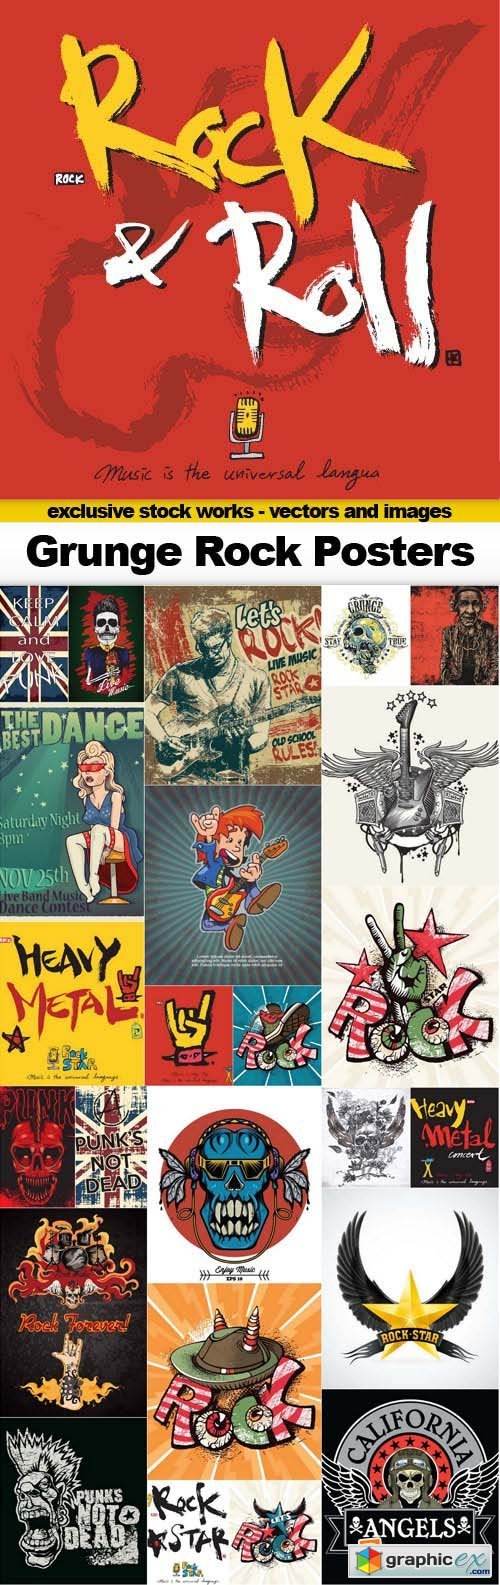 Grunge Rock Posters - 25x EPS